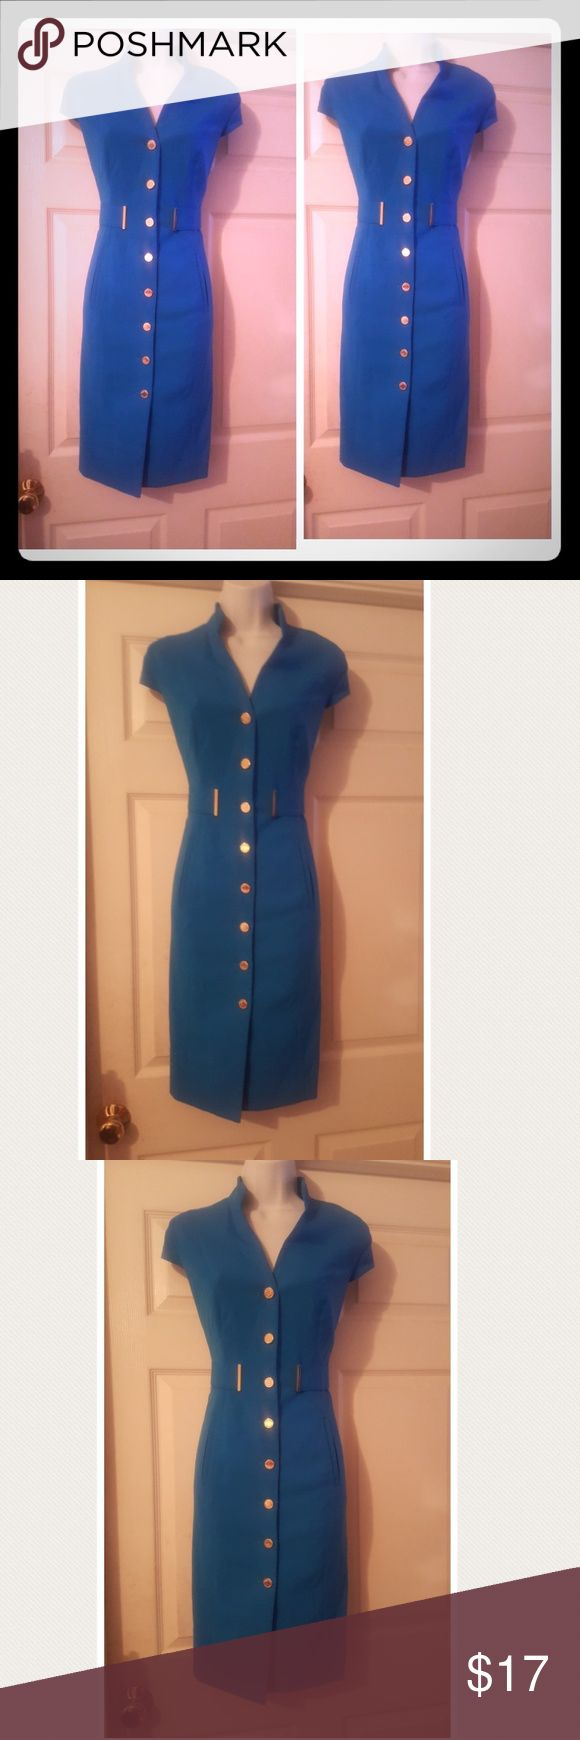 Jade blue Calvin Klein military sheath dress Beautiful Jade blue Calvin Klein military sheath dress with gold buttons that button down the front and cap sleeves.  Dress is in excellent condition, but dry cleaning would make it like brand new off the rack. If i dry cleaned it would at to the price. Calvin Klein Dresses